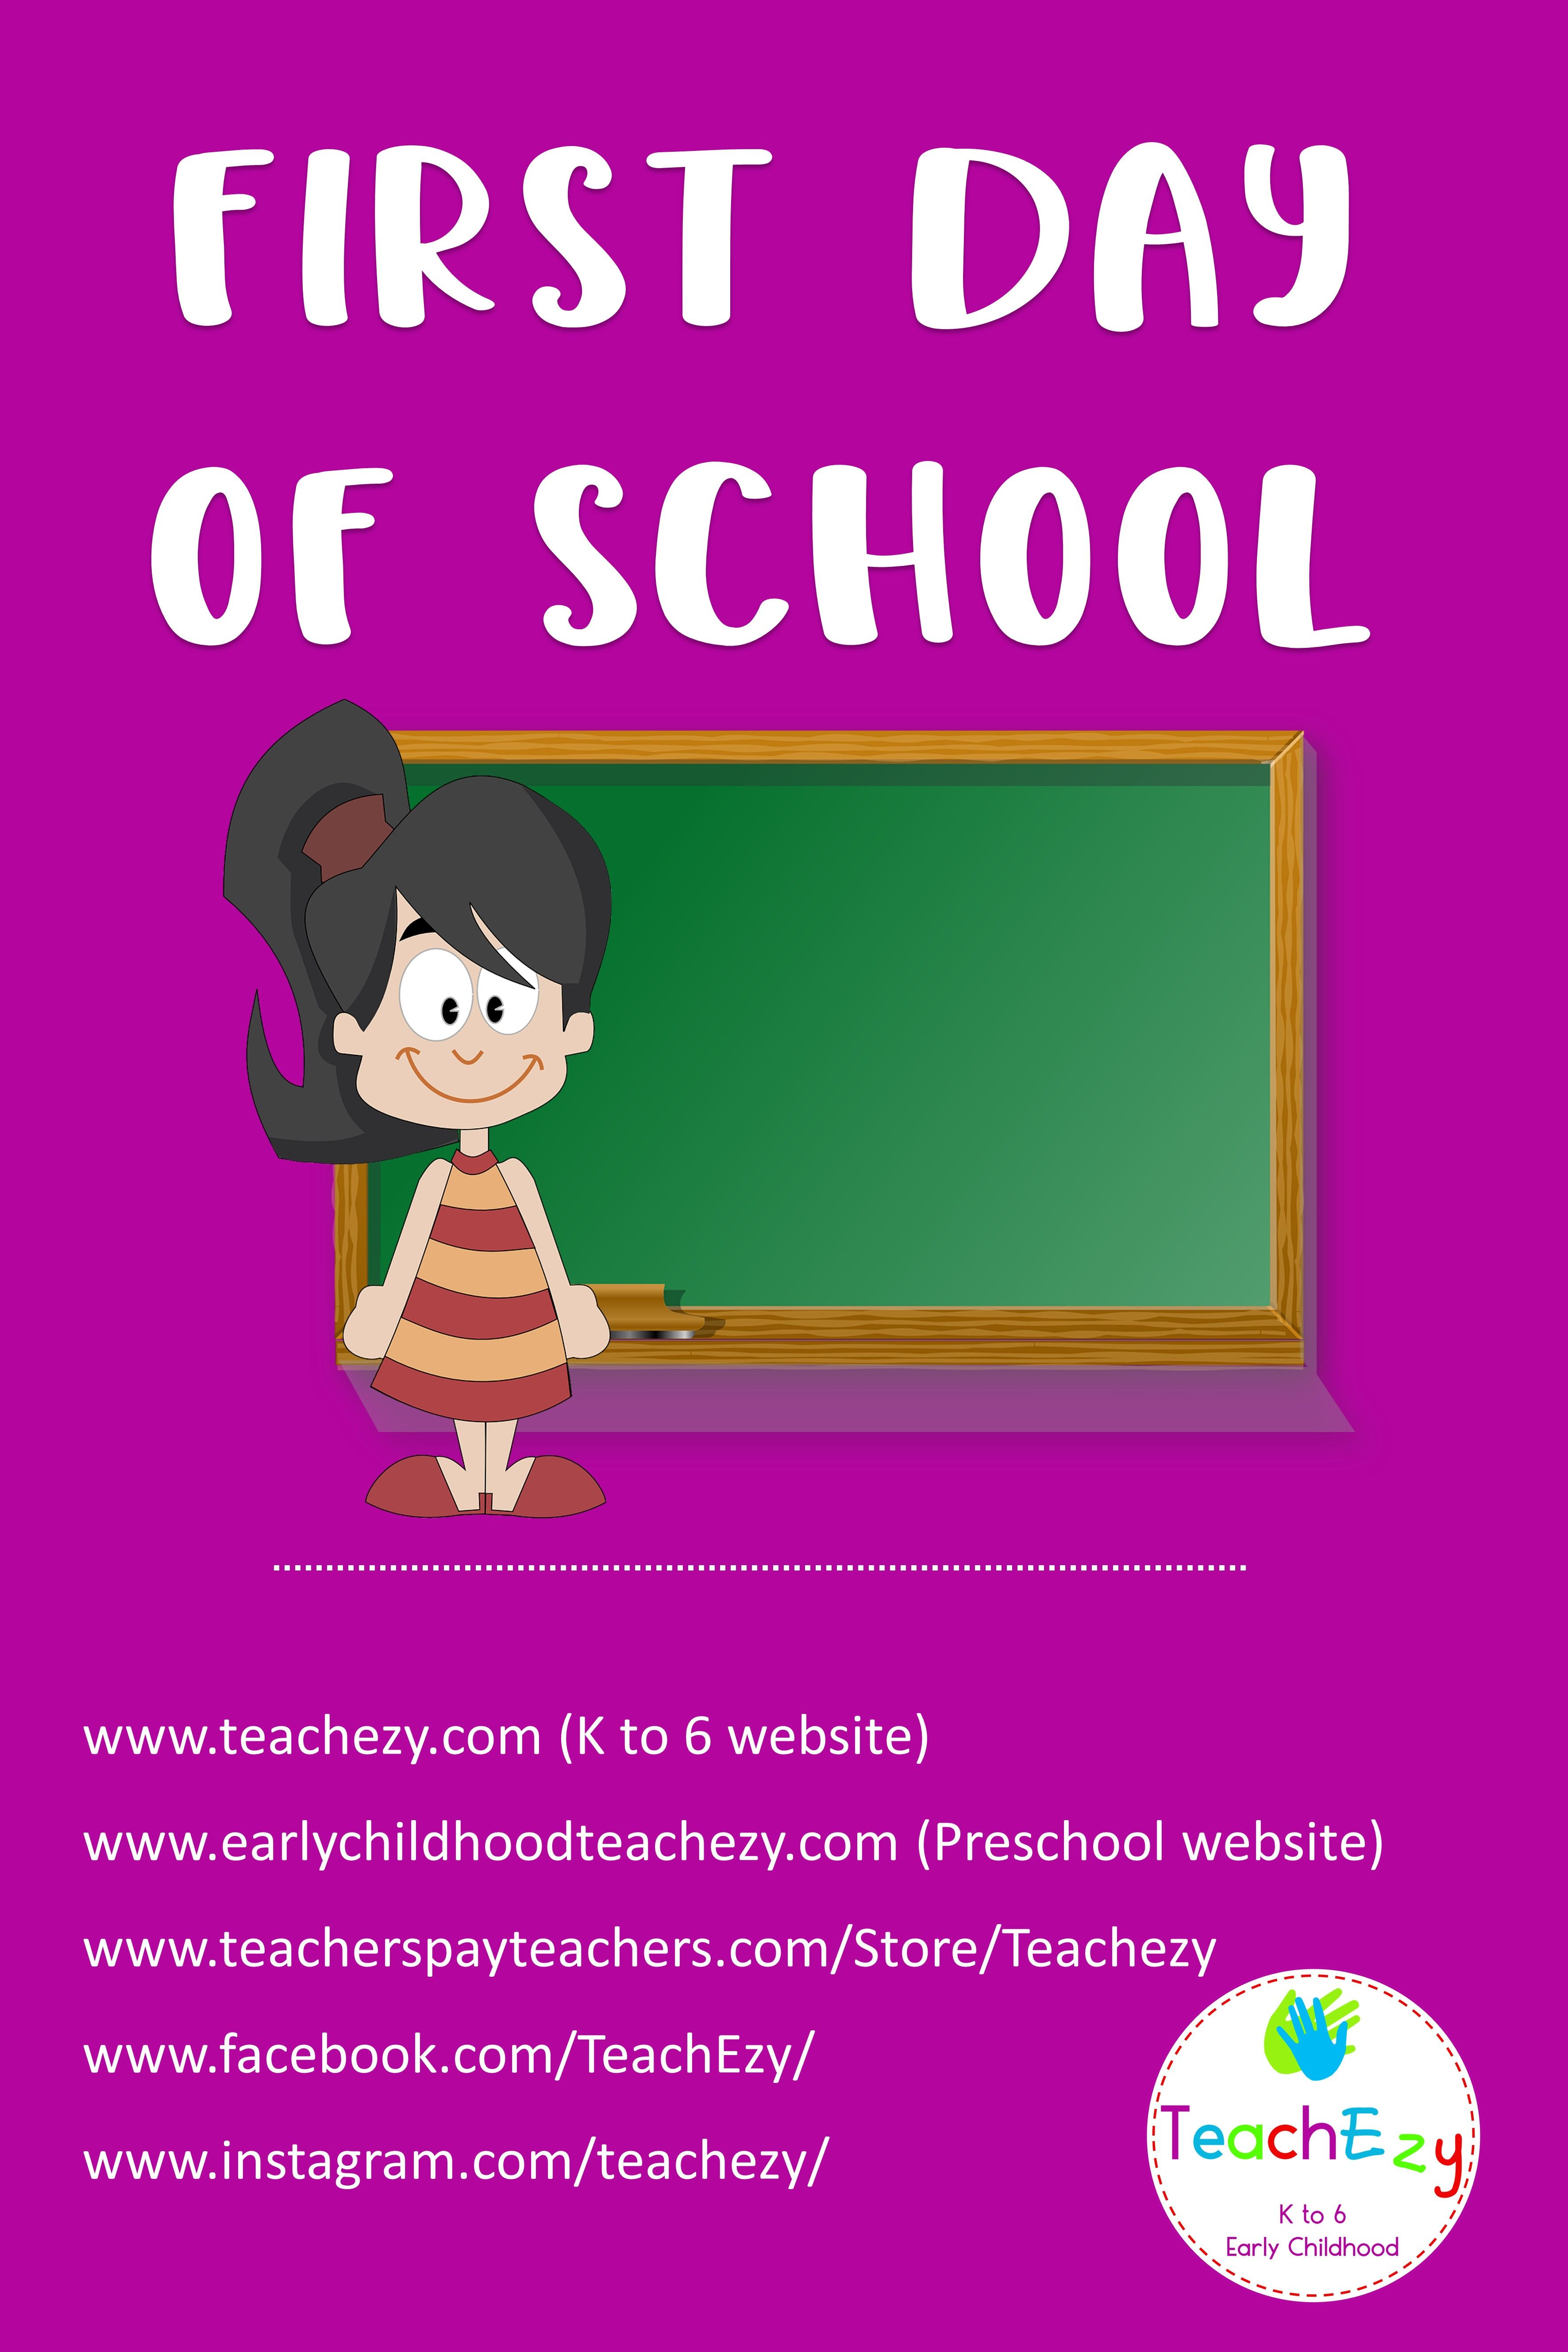 First Day Of School Ideas And Resources